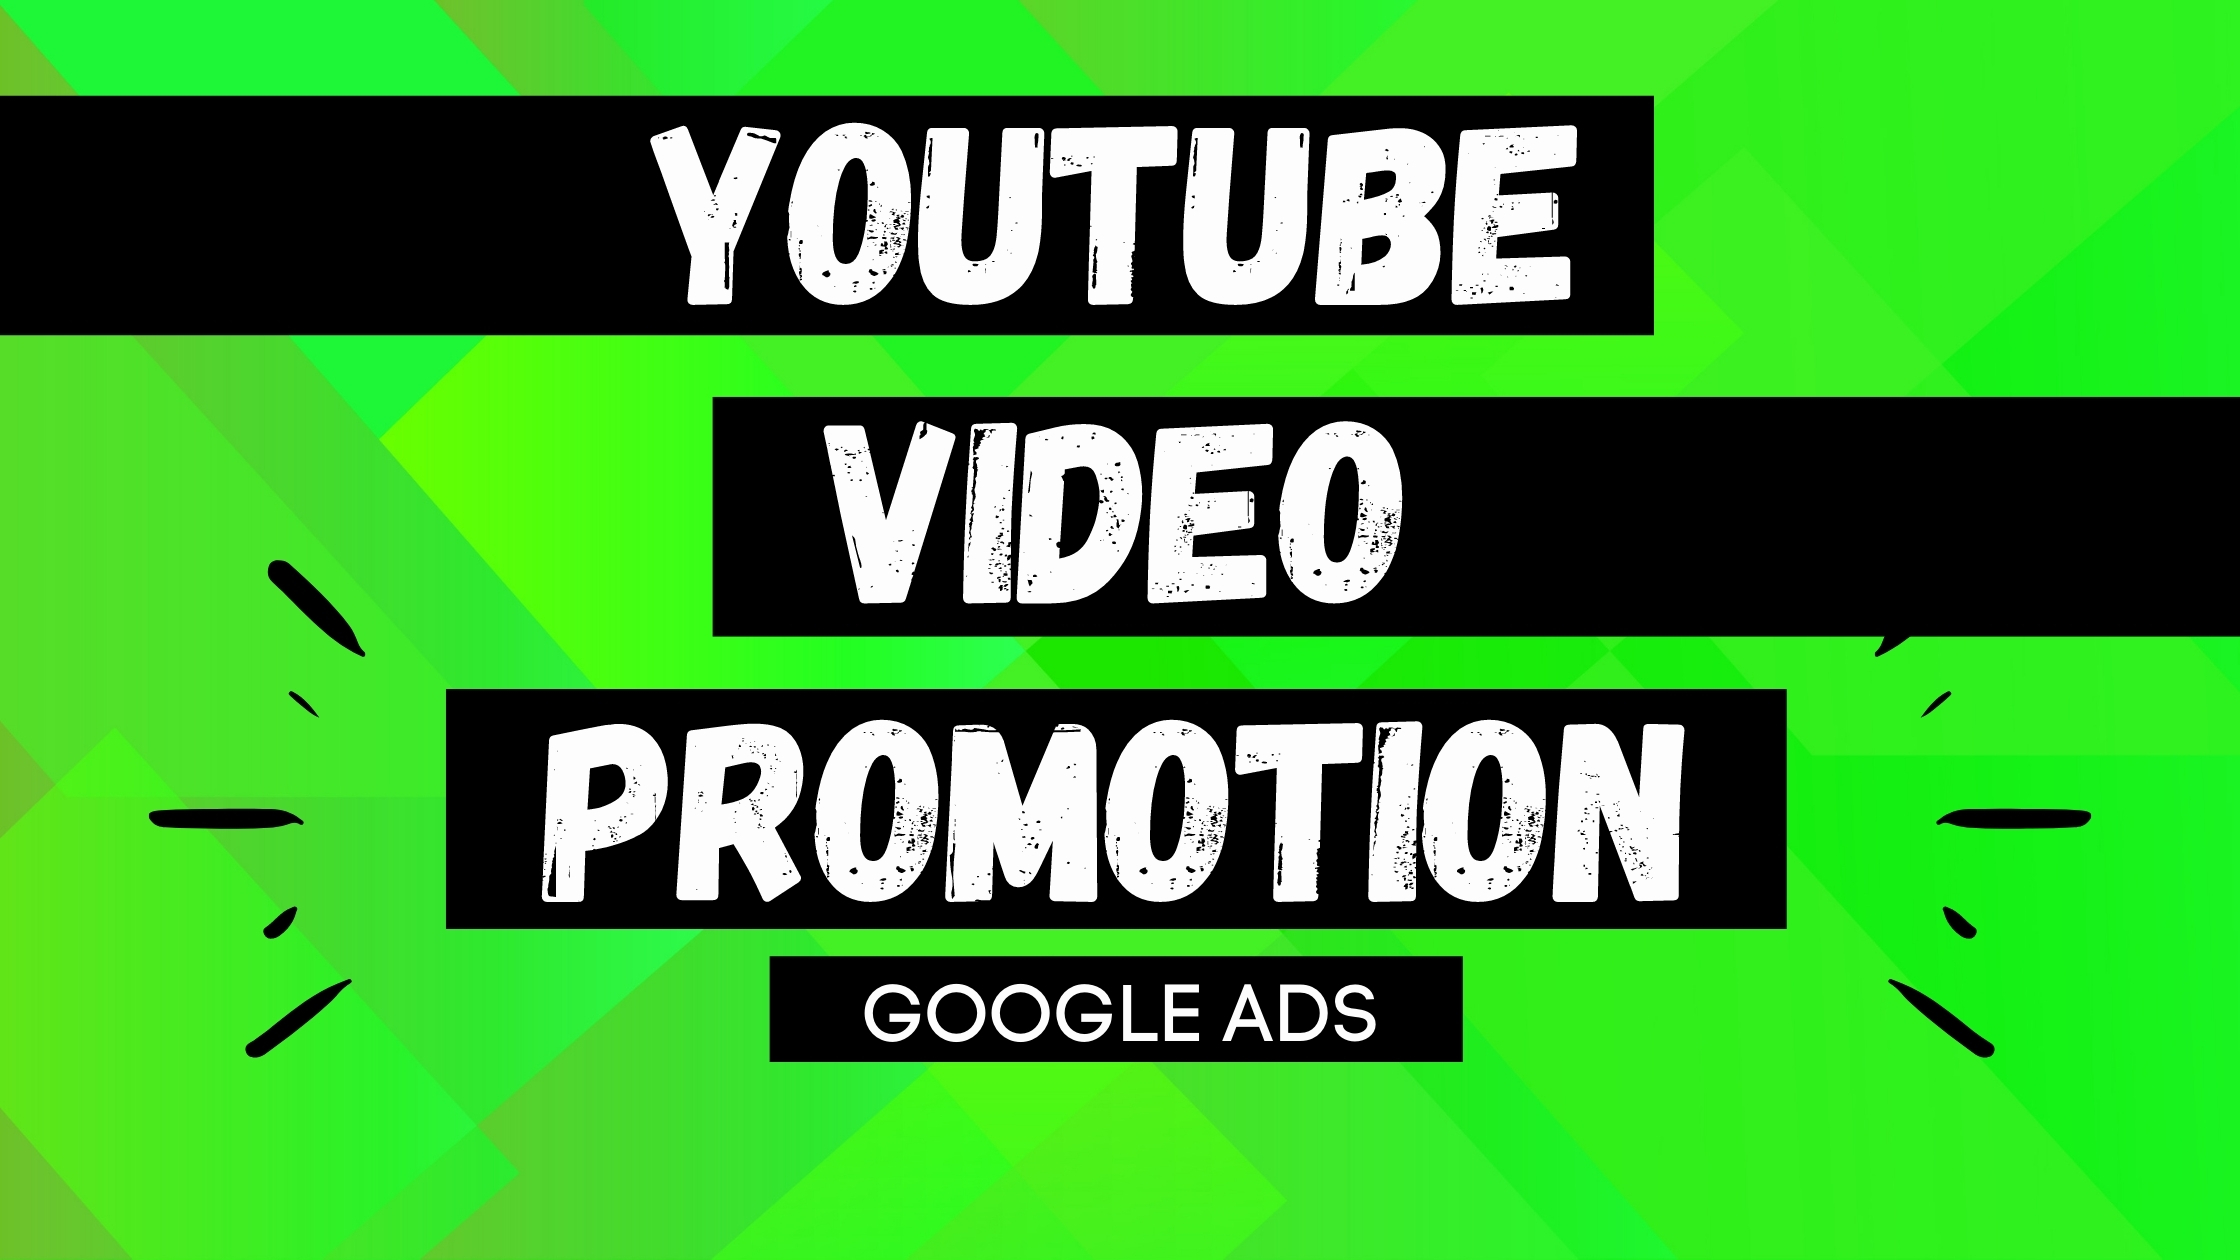 YouTube video promotion by google ads